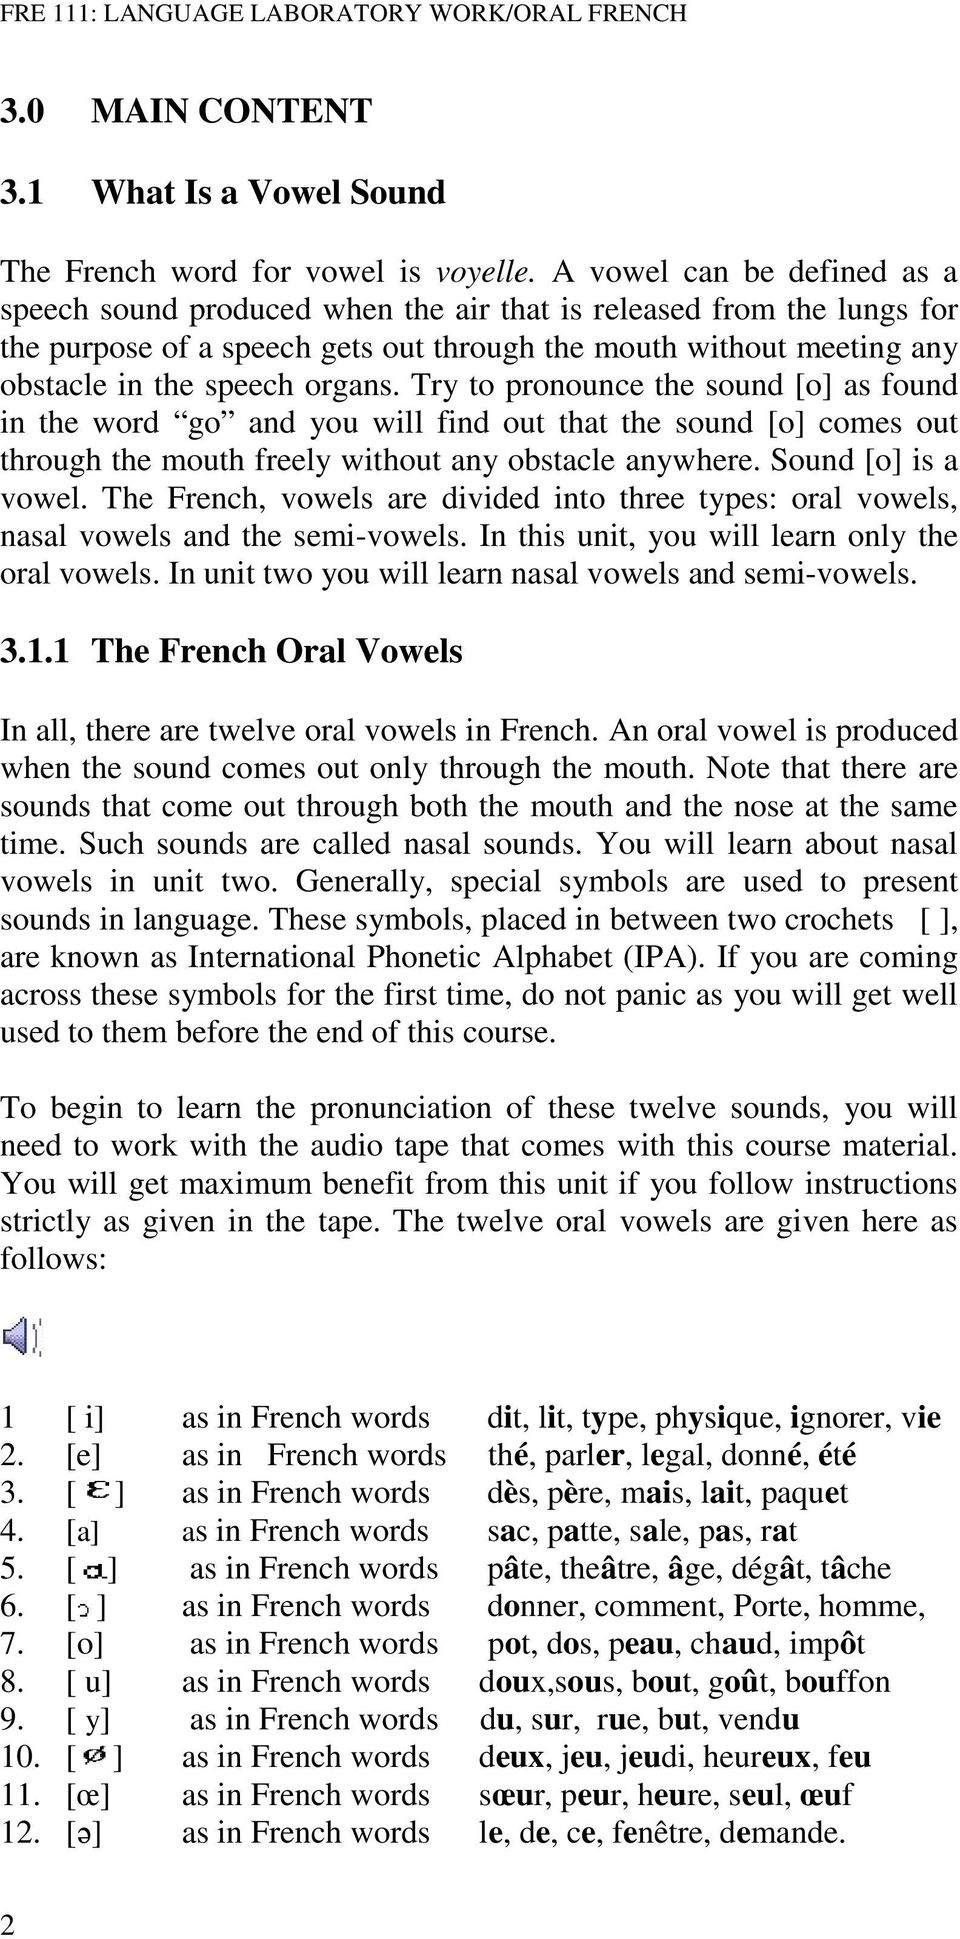 COURSE GUIDE FRE 111 LANGUAGE LABORATORY WORK/ORAL FRENCH - PDF